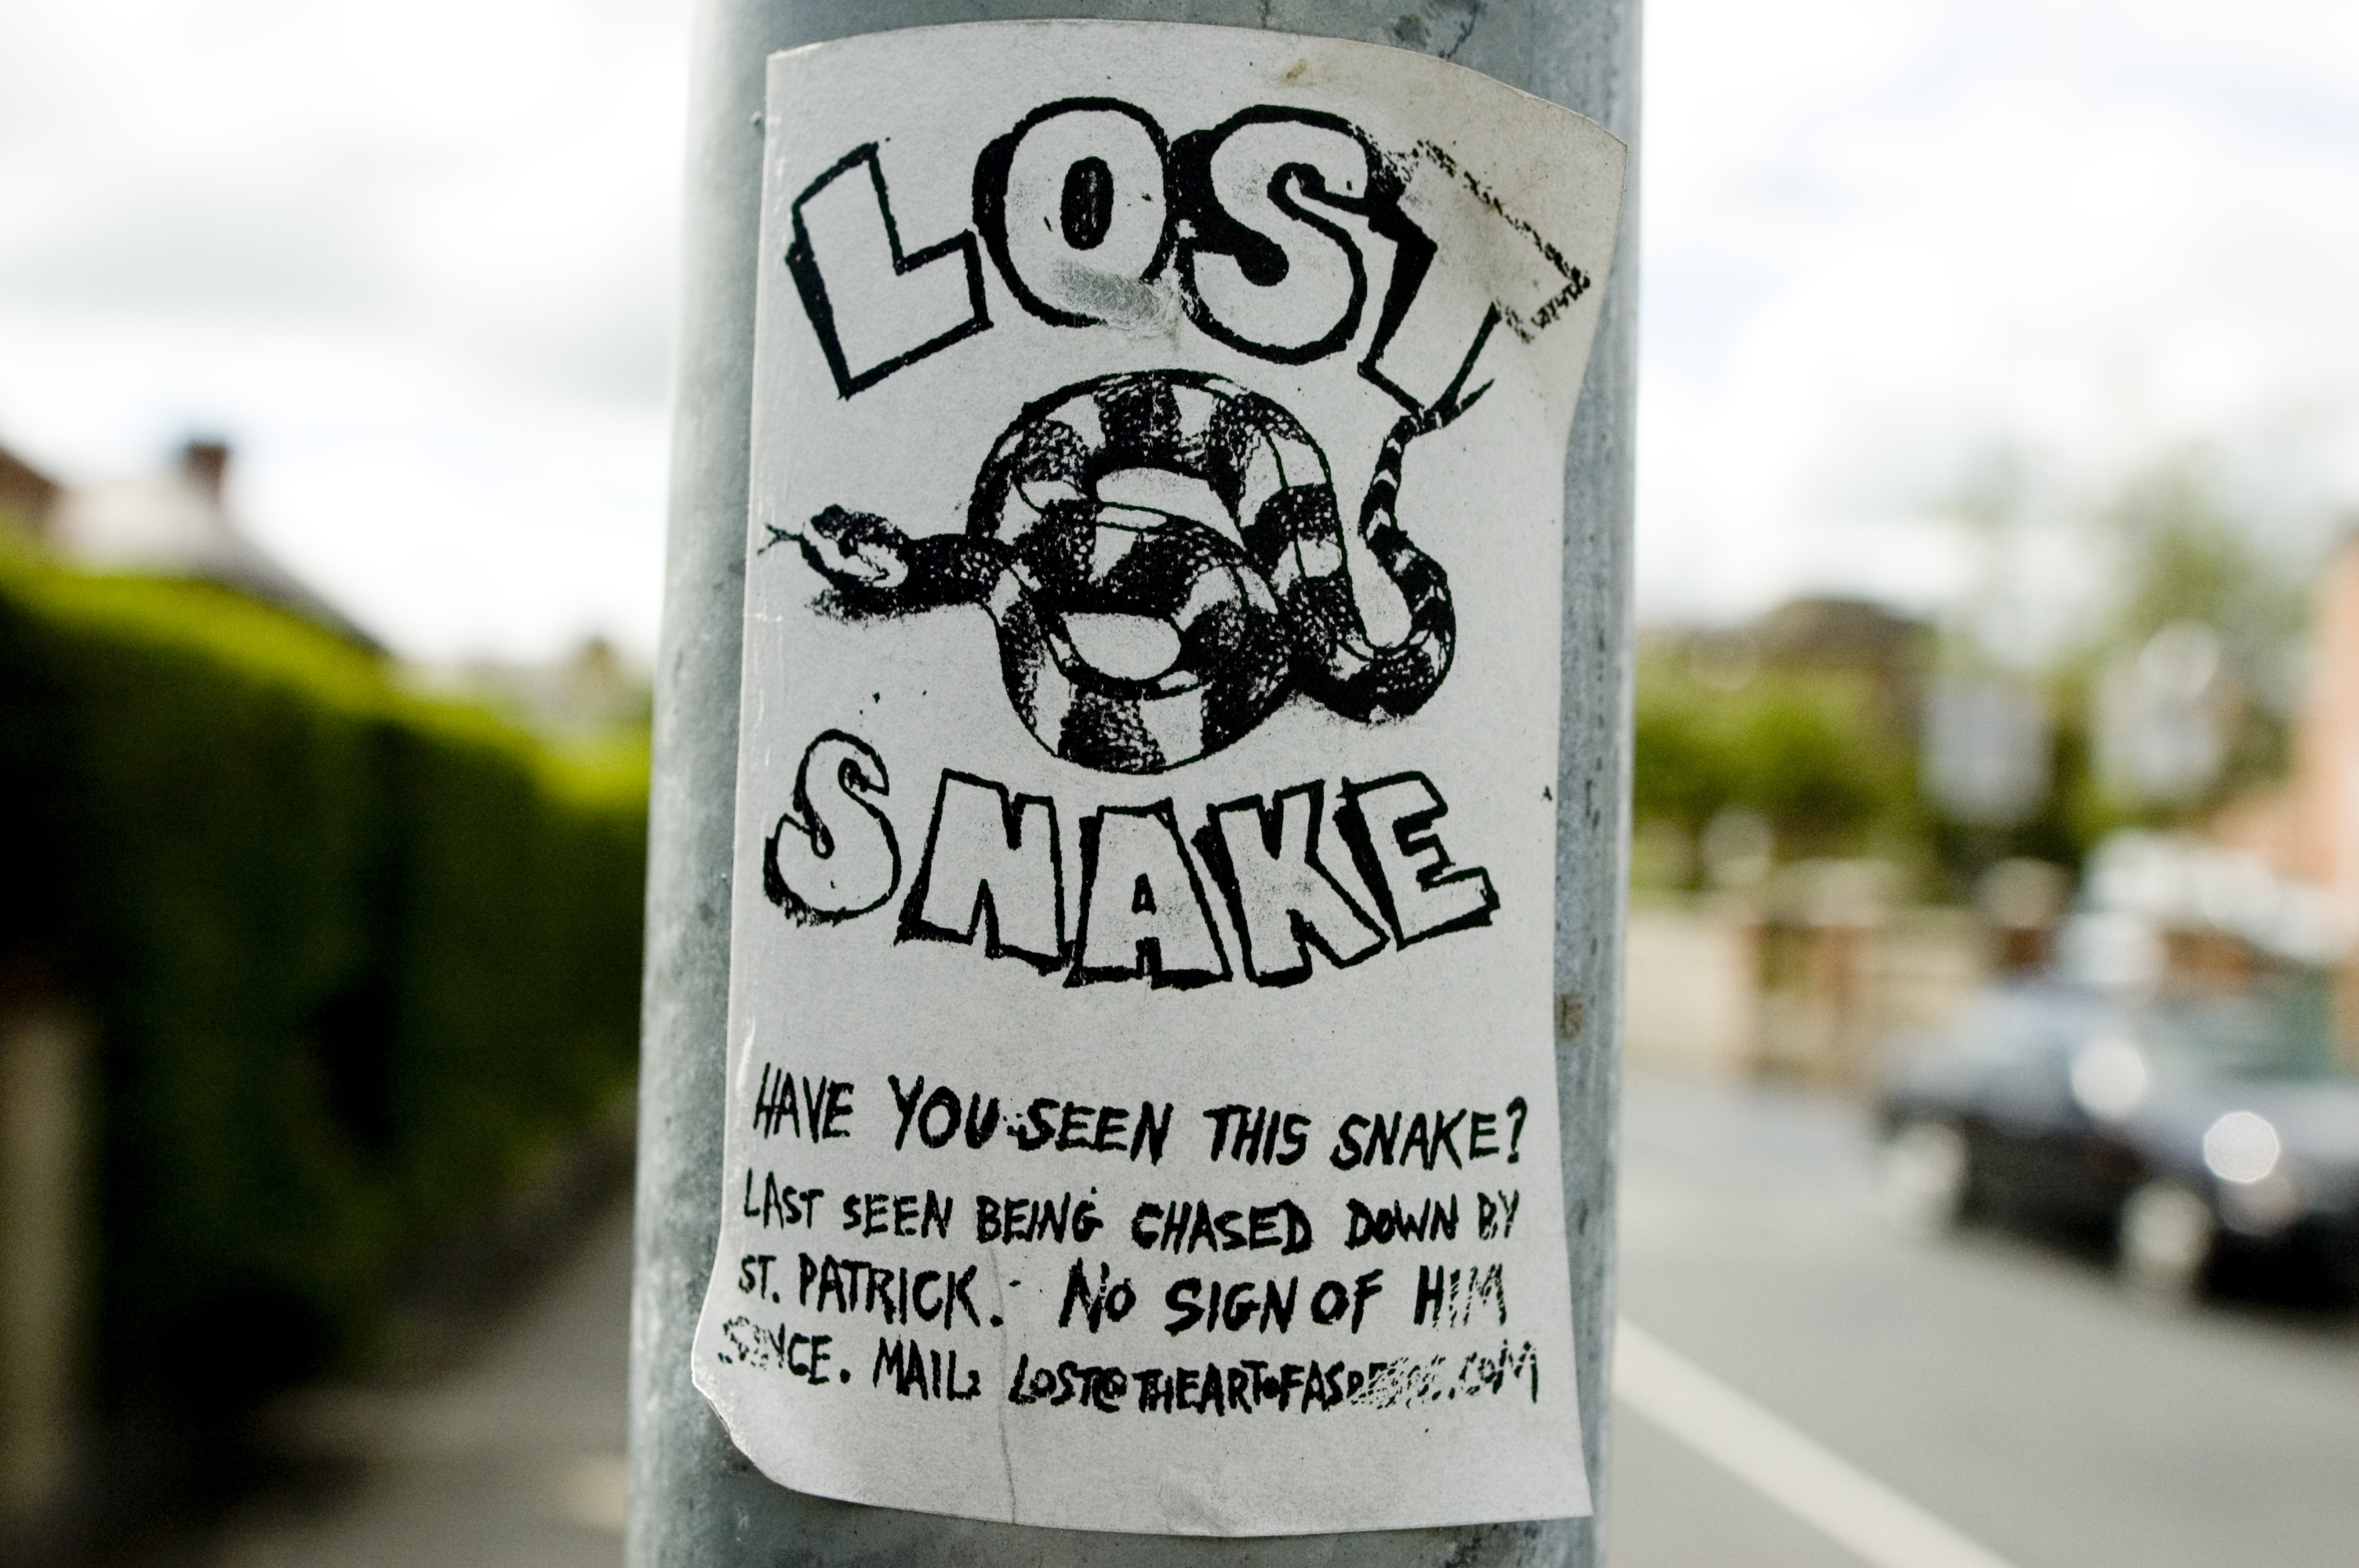 Lost Snake by Asbestos. Photo from Asbestos